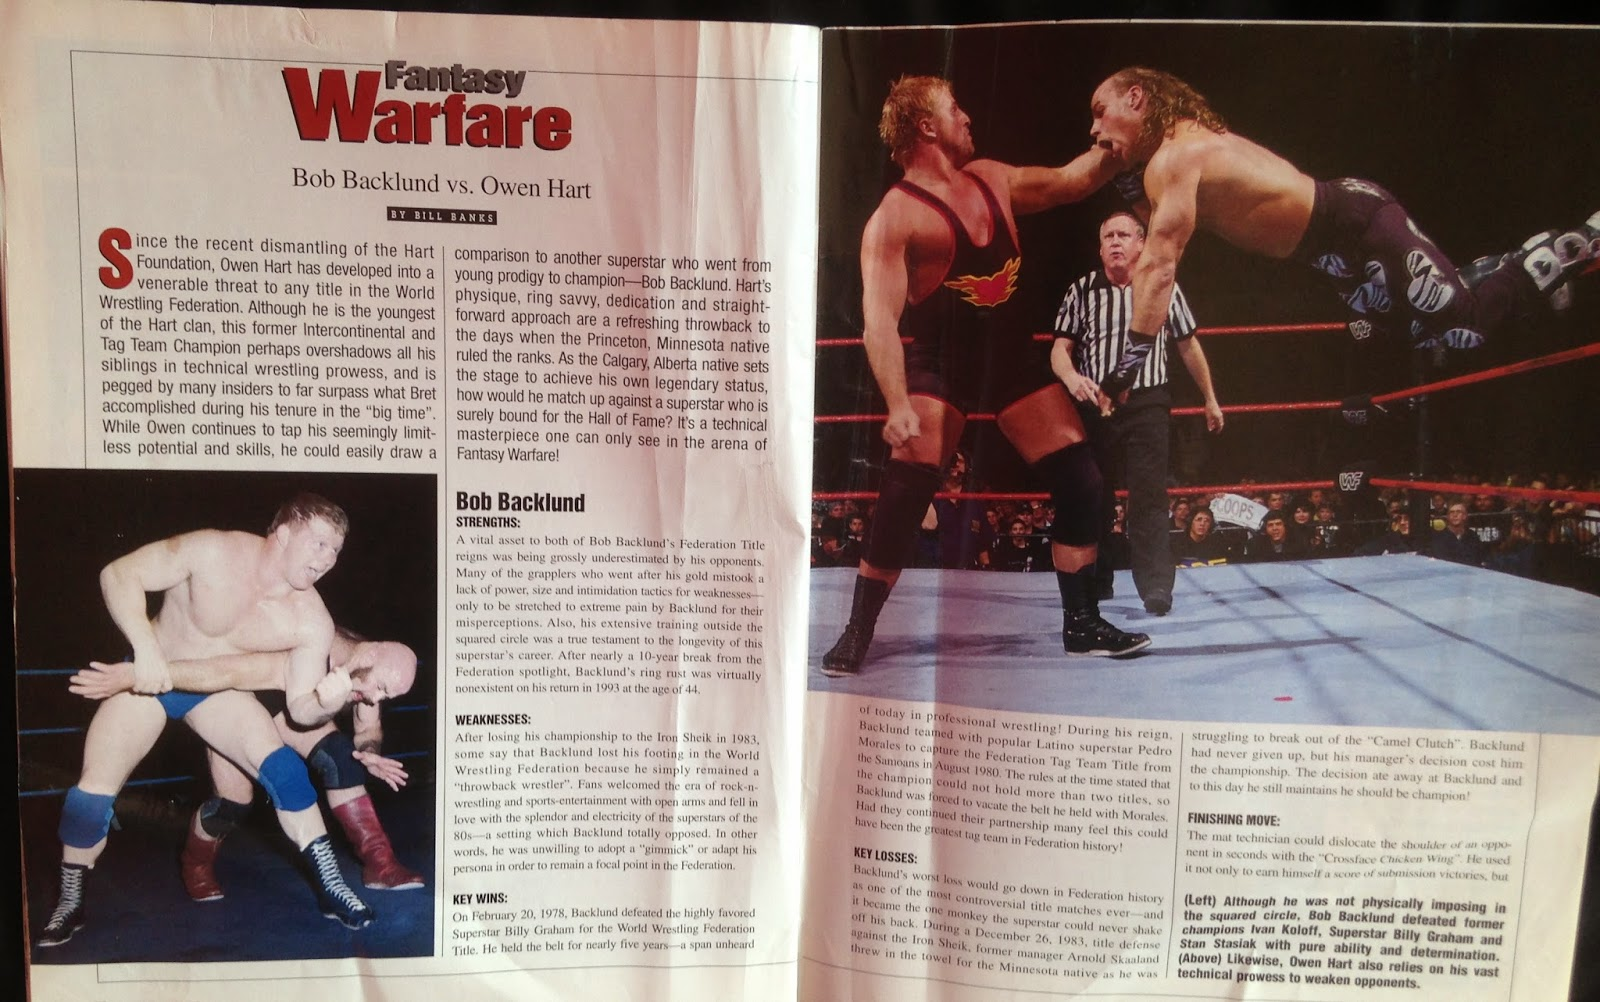 WWE - WWF Raw Magazine - April 1998 - Owen Hart vs. Bob Backlund fantasy warfare